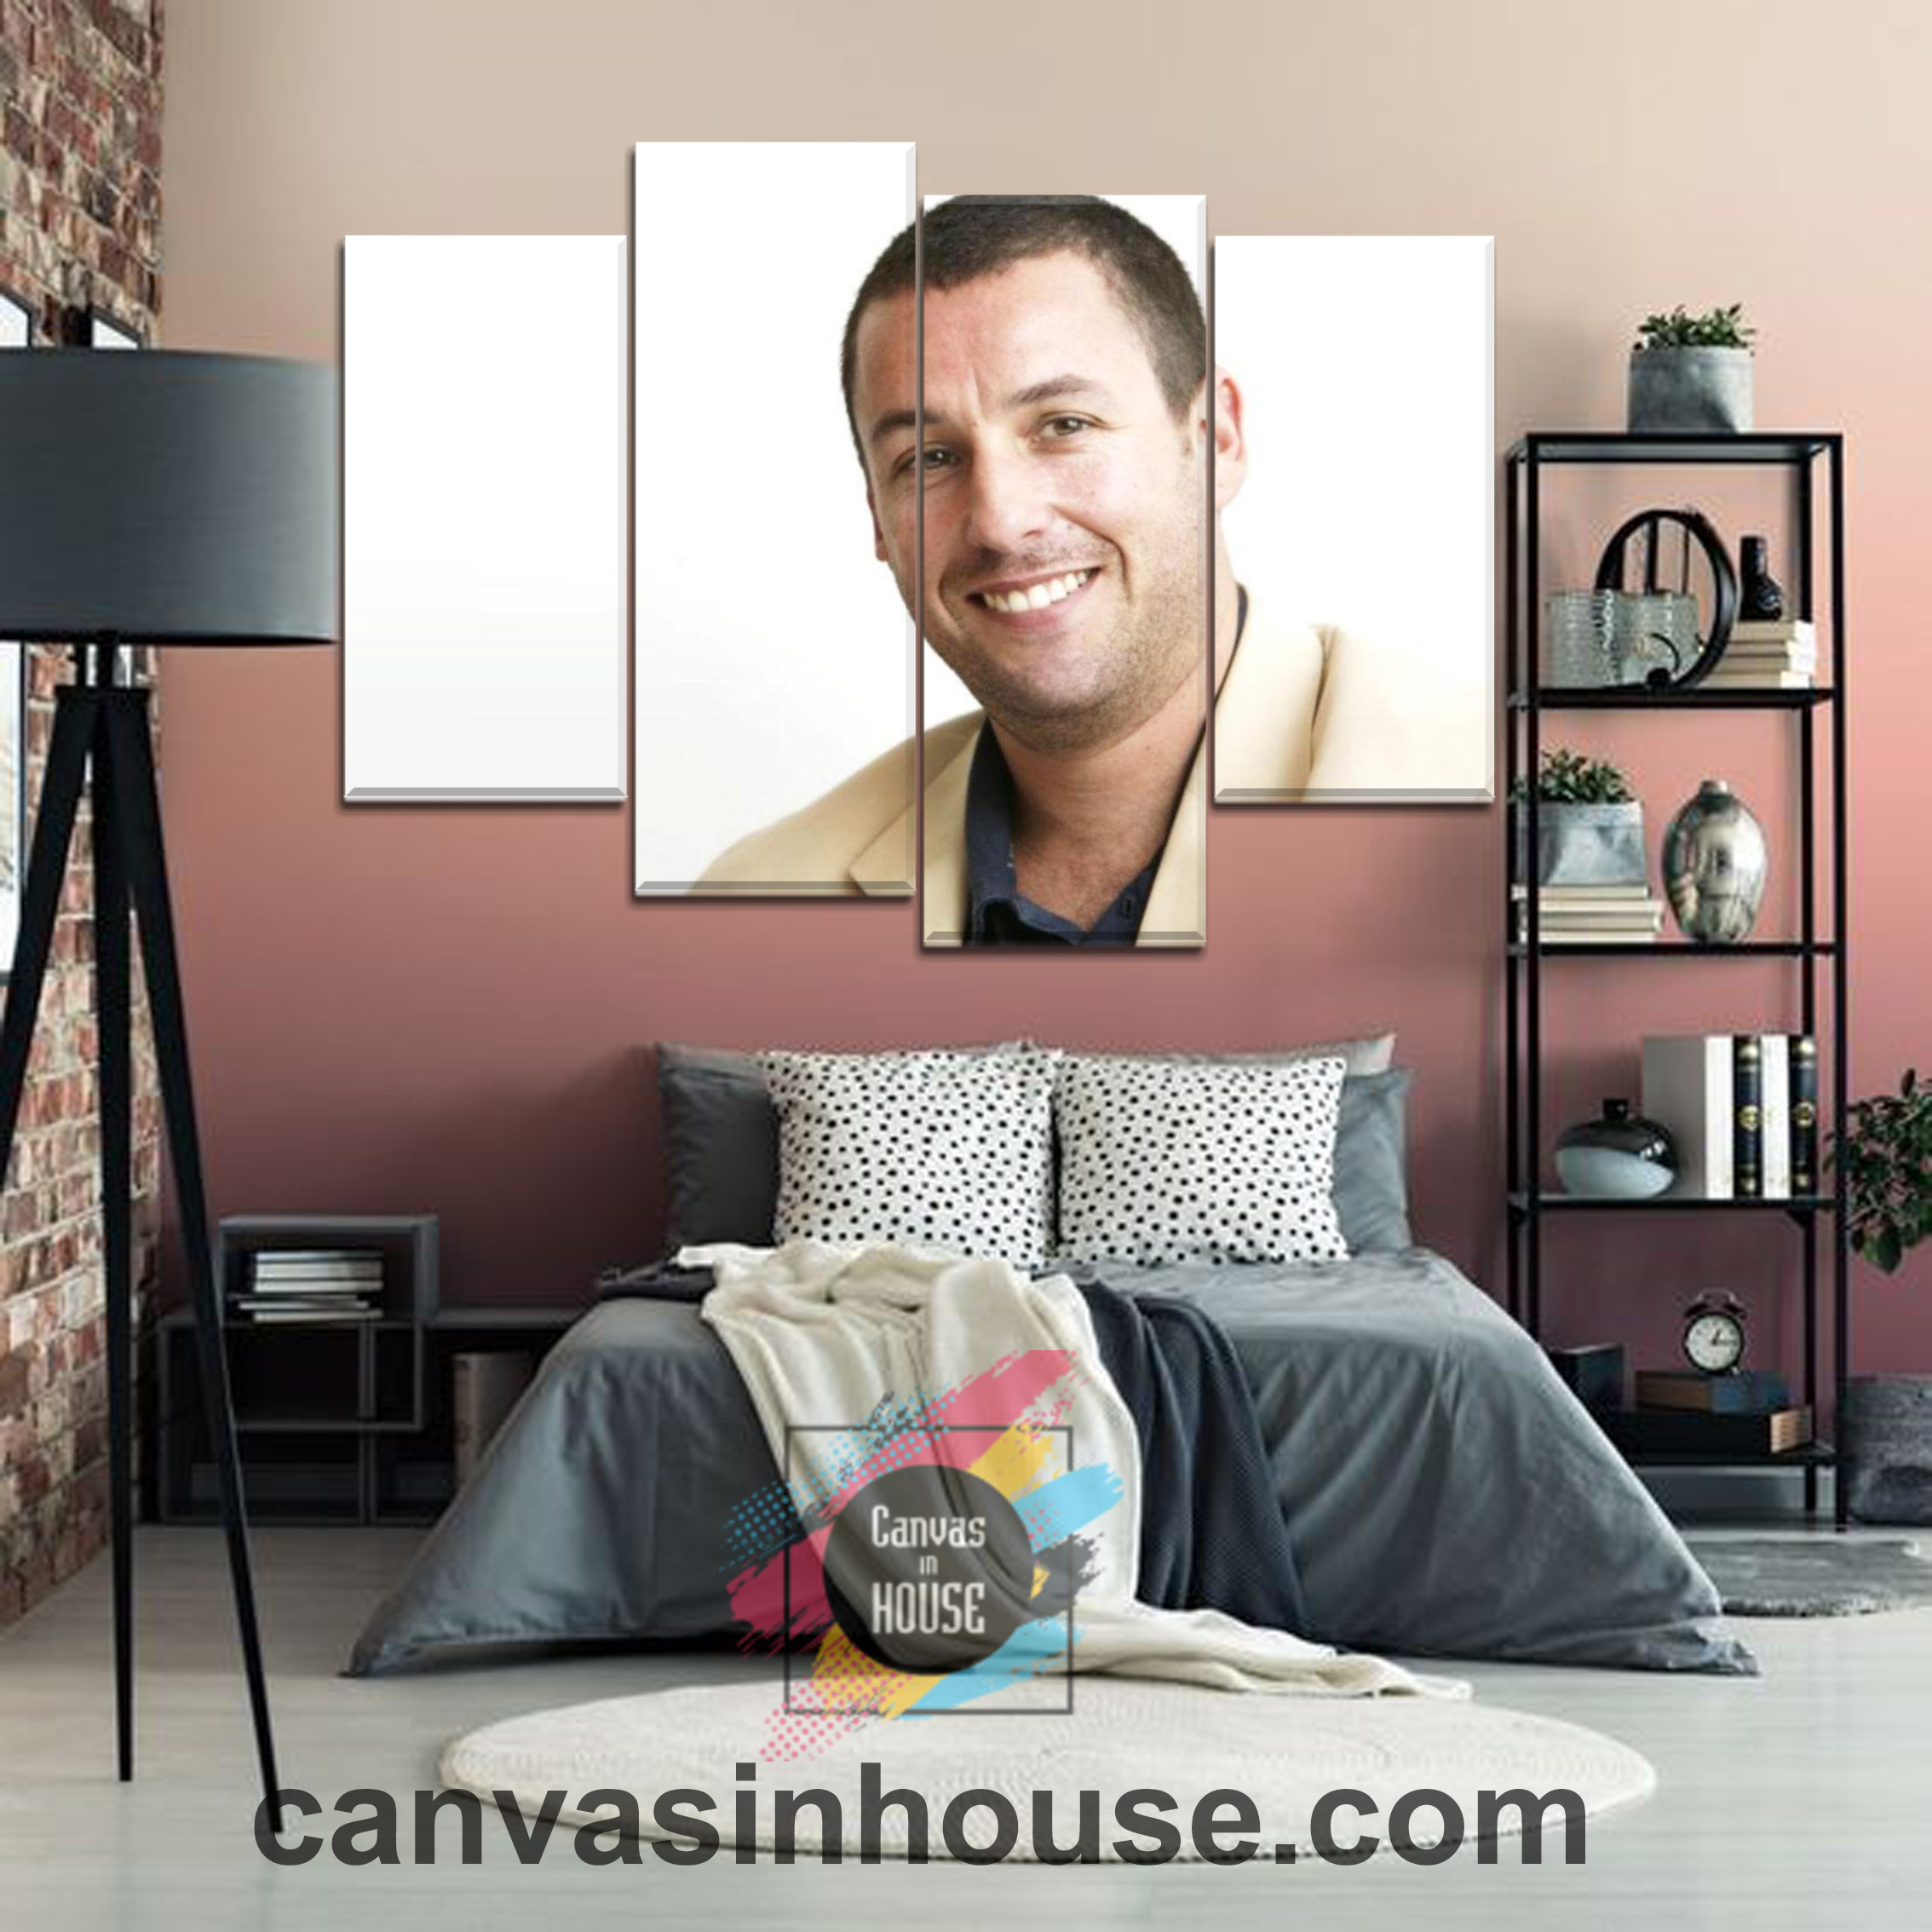 Adam Sandler Smile 2 Celebrity 4 Pieces Canvas Wall Art ...